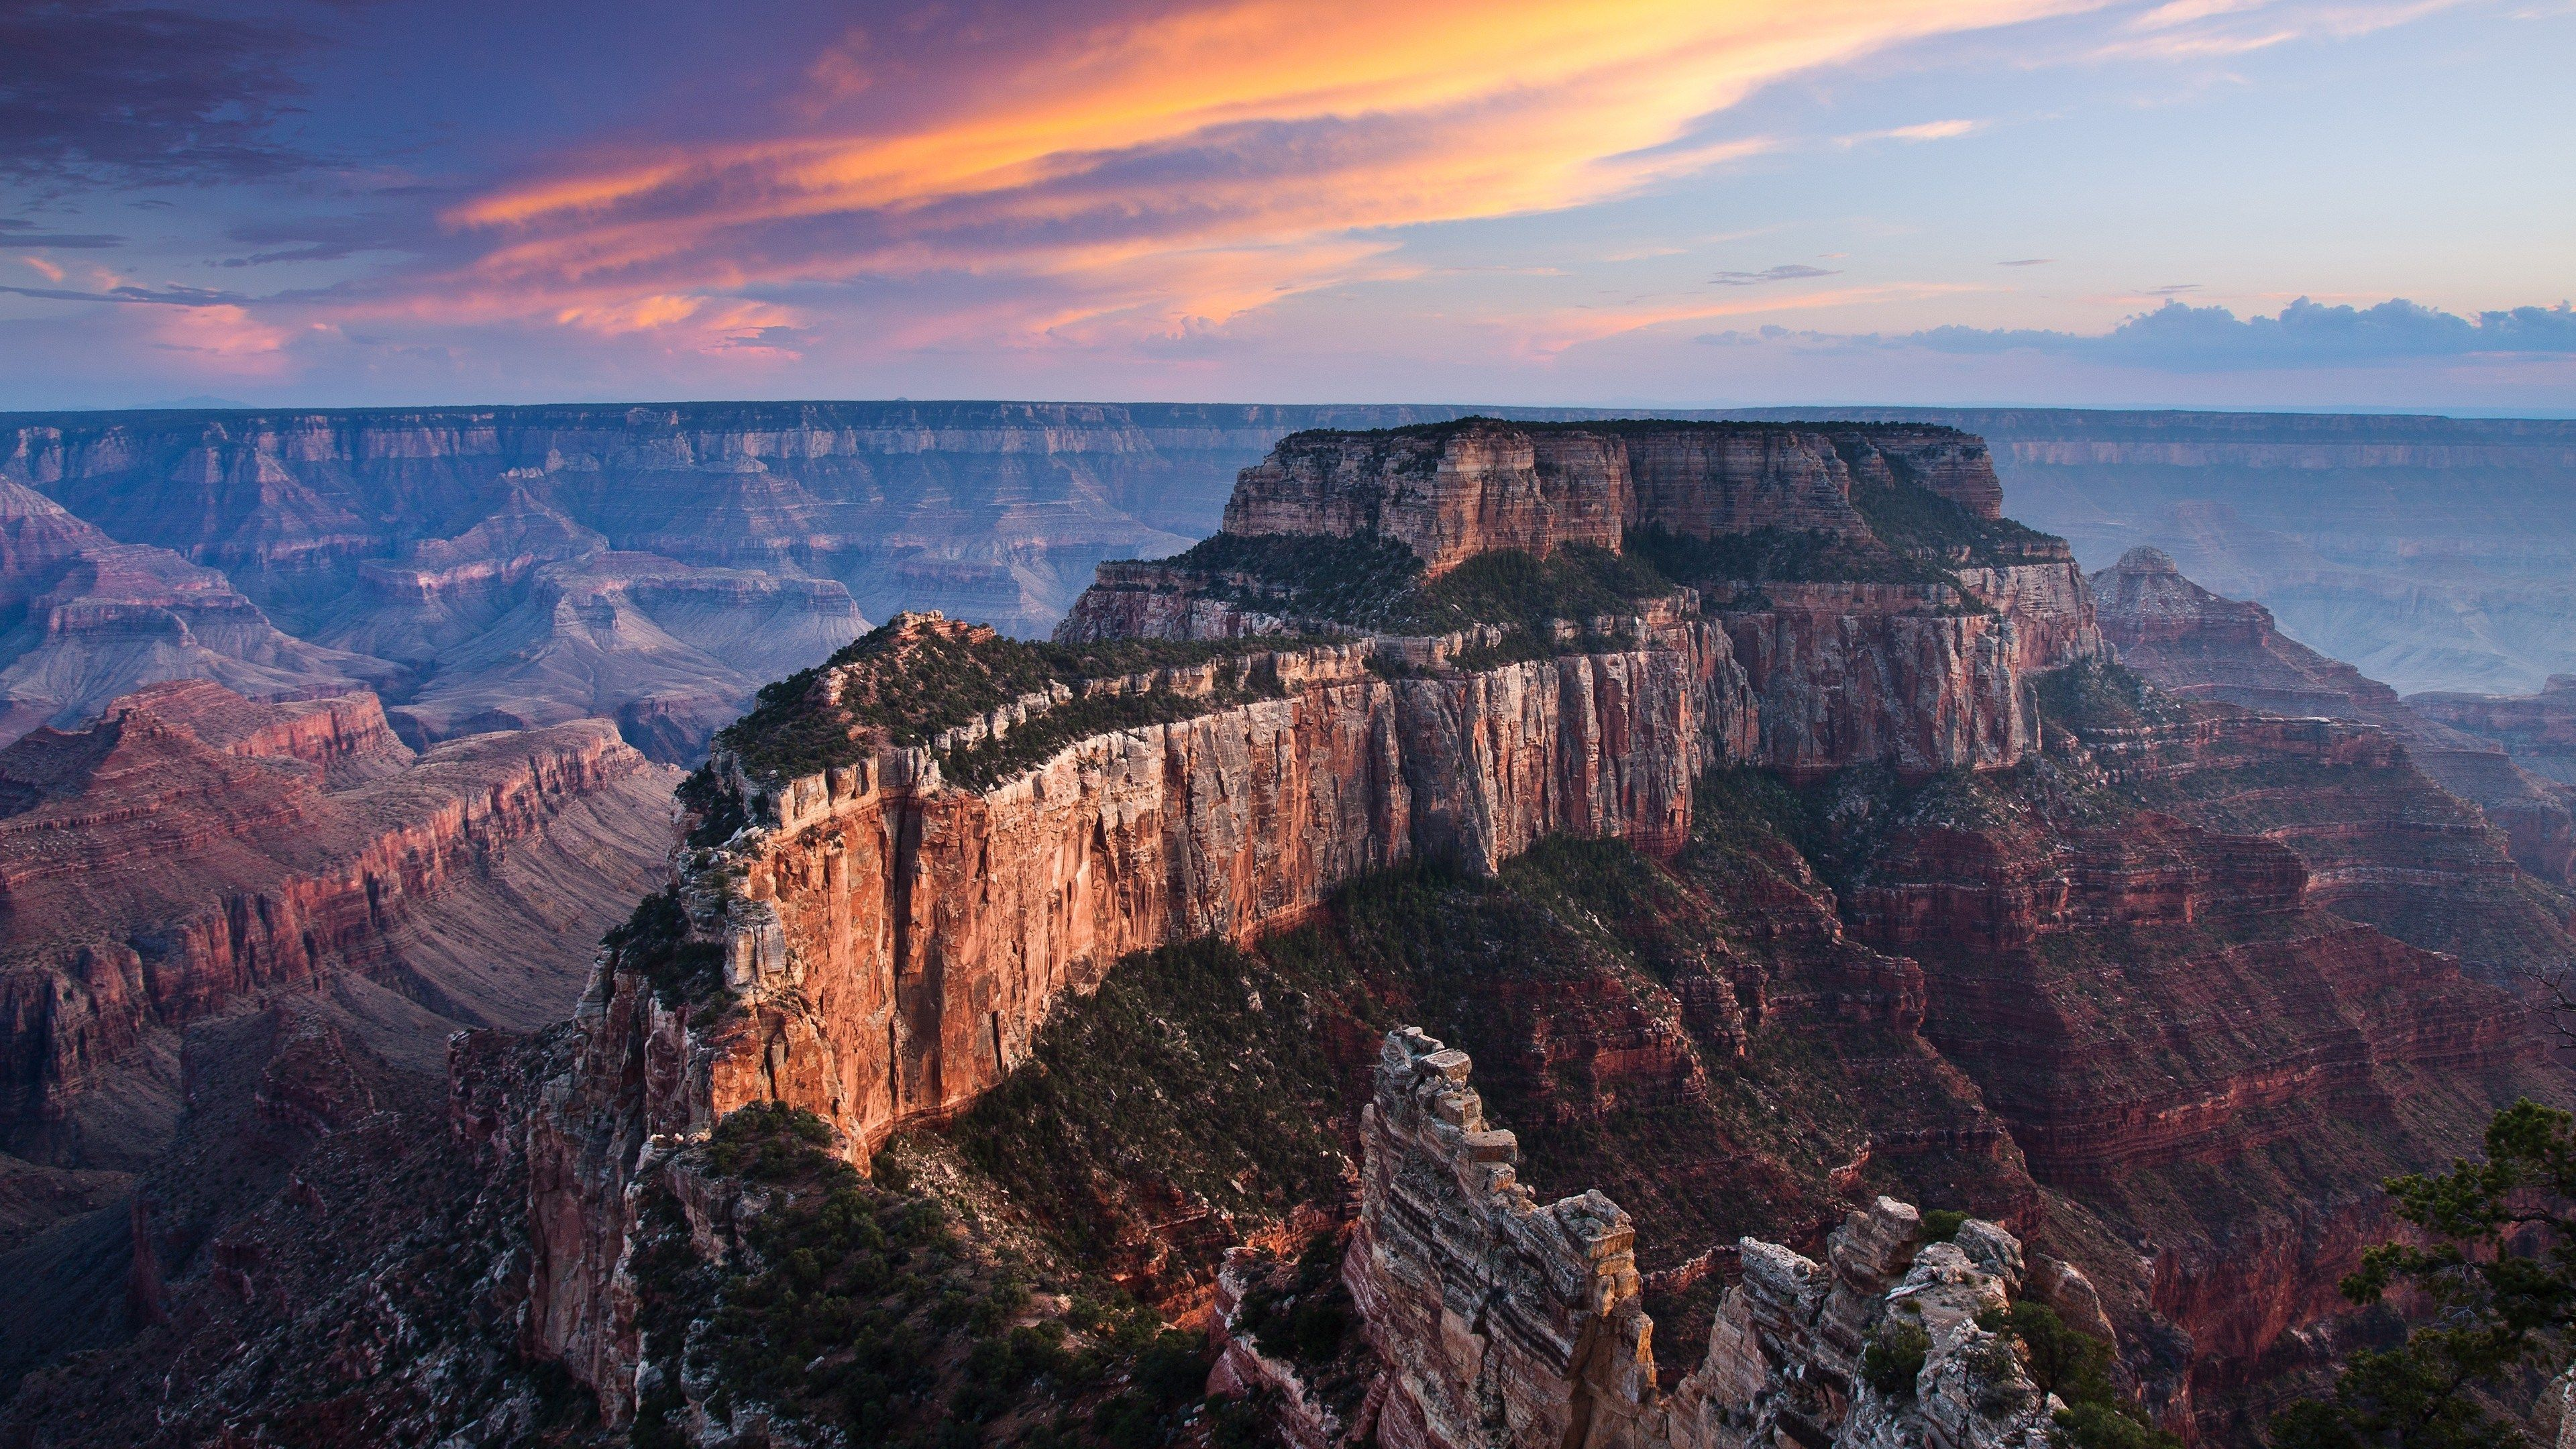 4k Grand Canyon Hd Wallpaper 3840x2160 With Images Grand